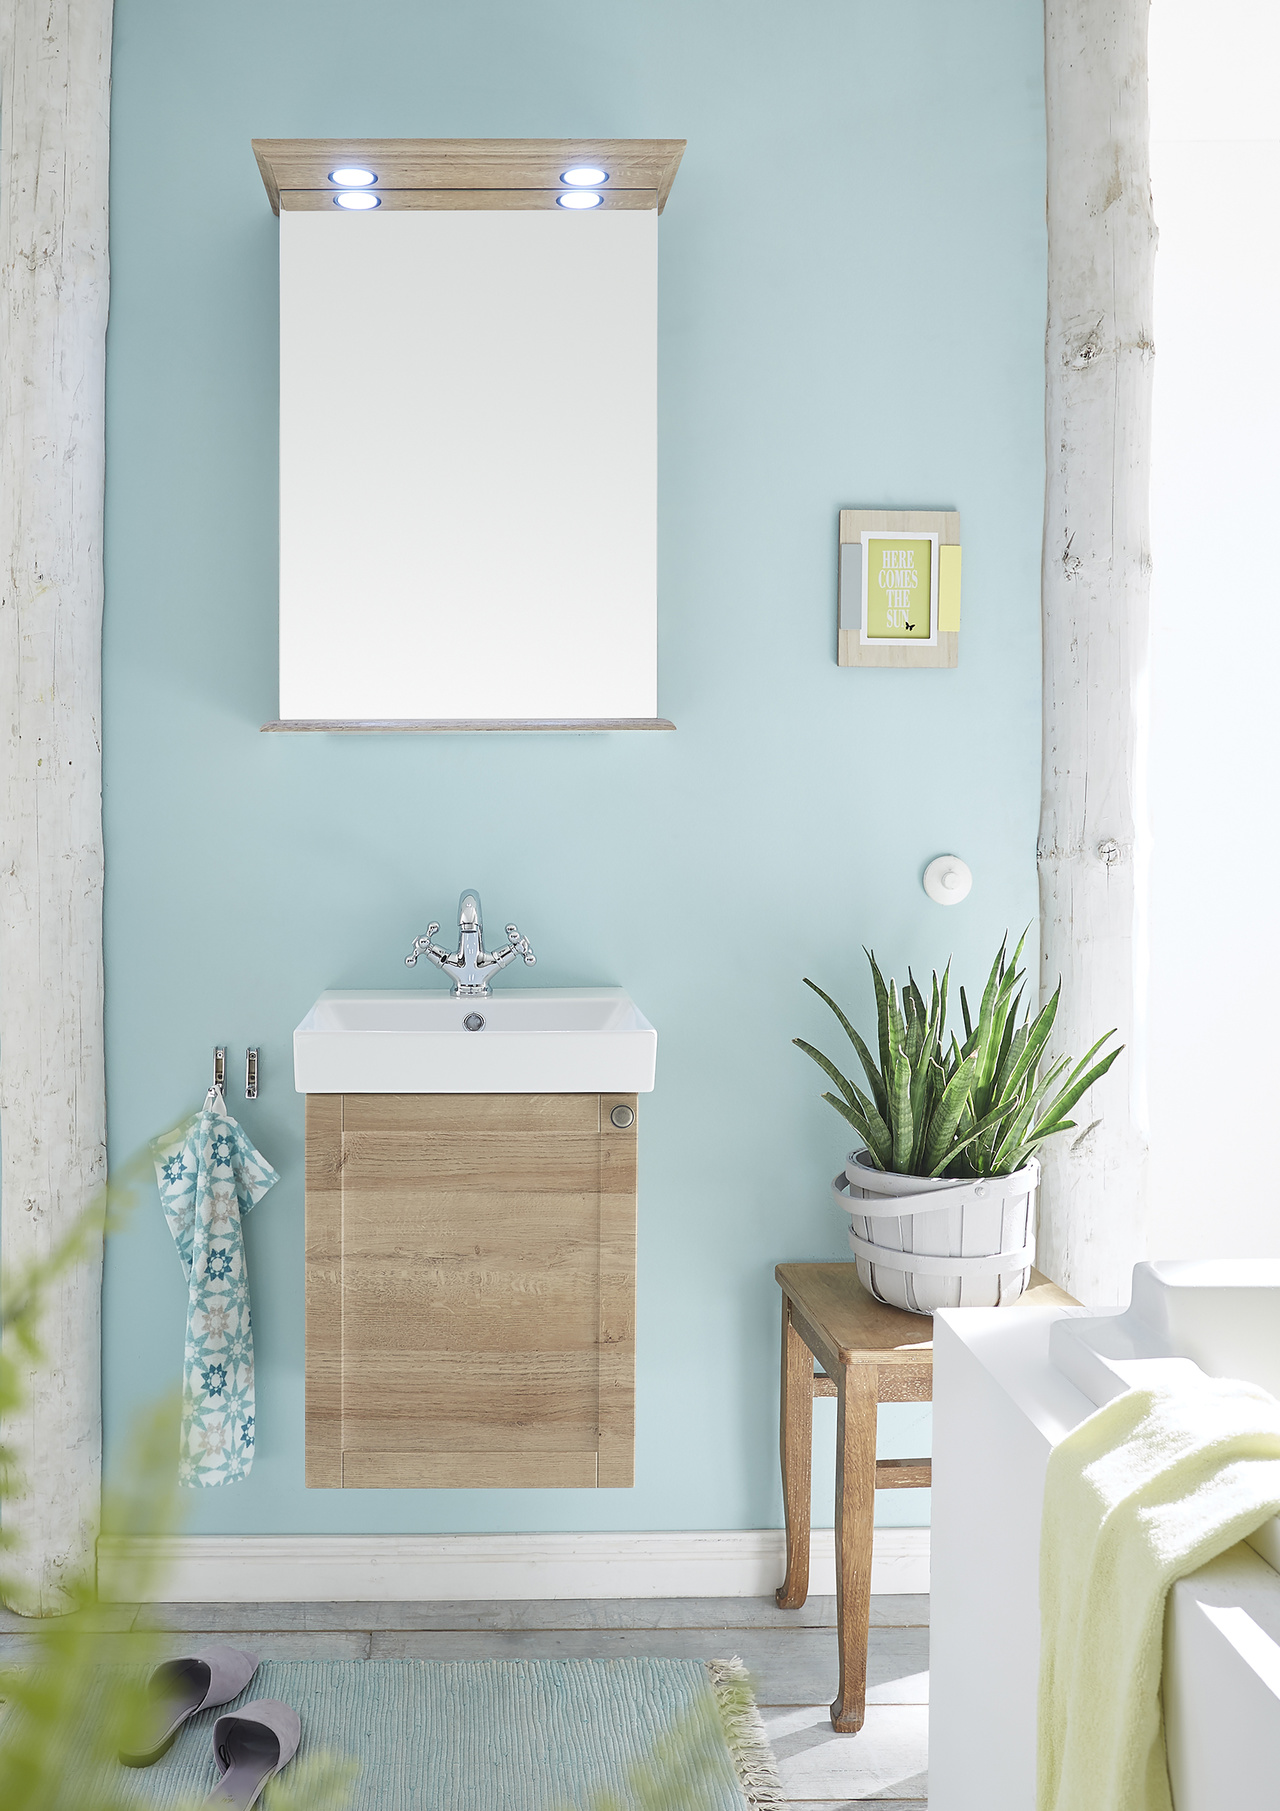 Solitaire 9030 - Solitaire - Bathroom furniture - Brands furniture ...